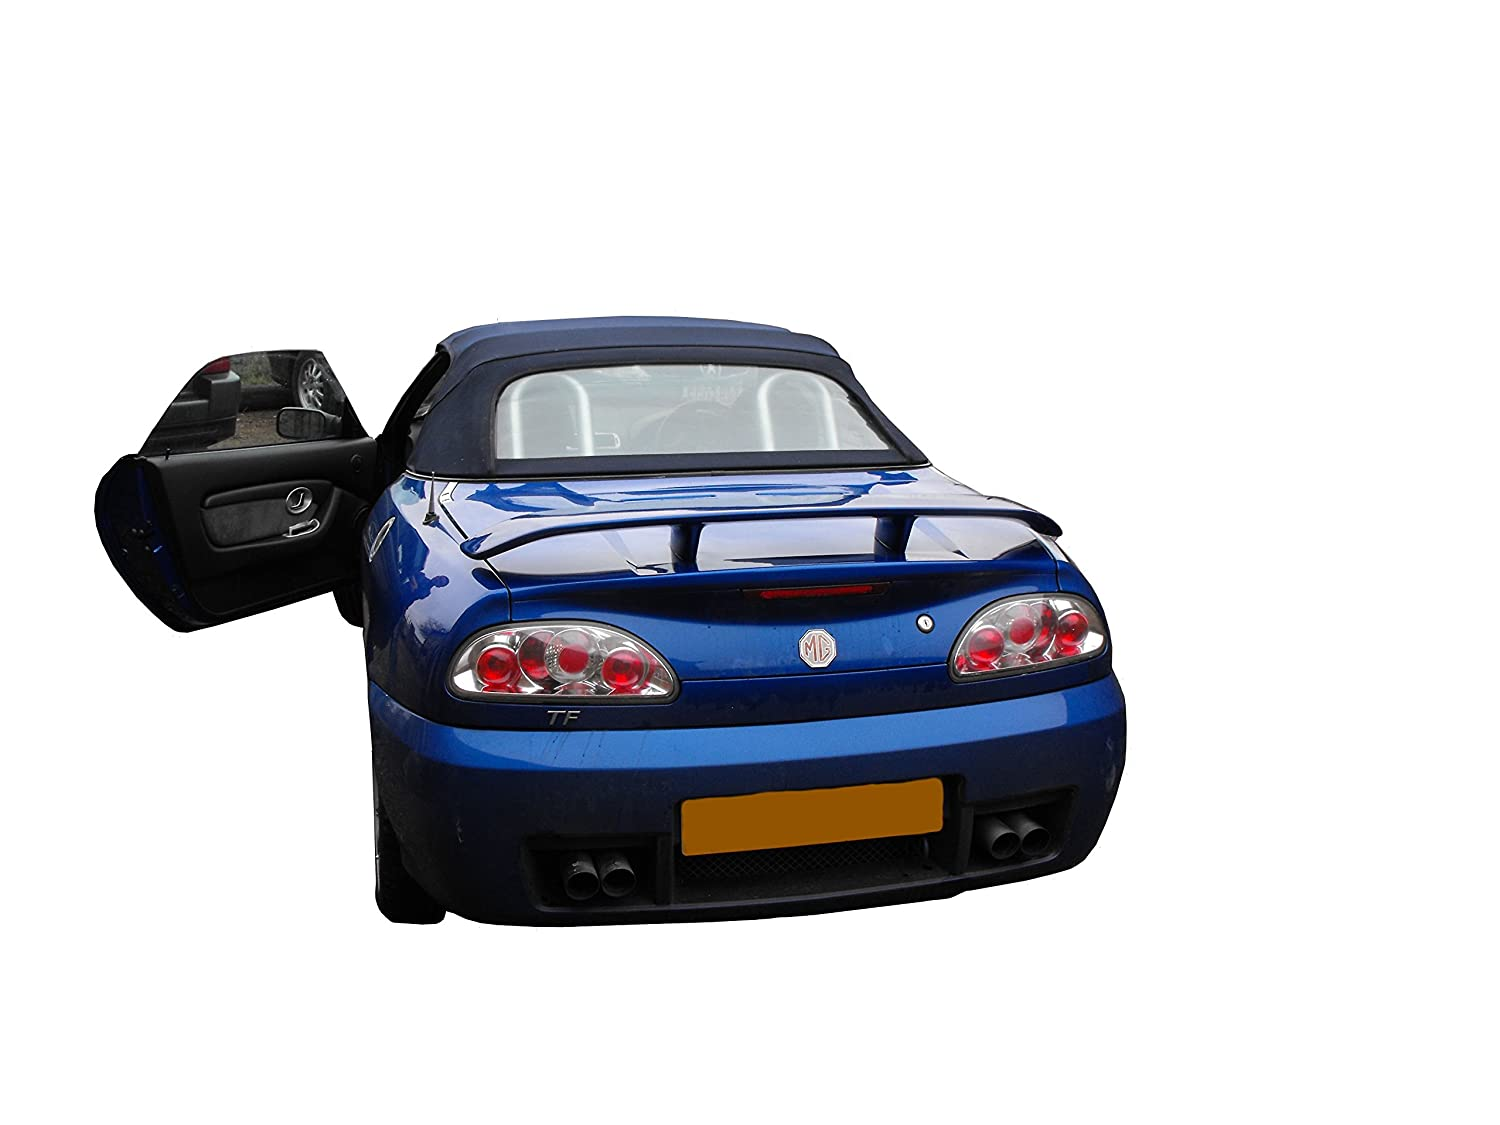 FULL SET GENUINE MG-ROVER MGF MUD FLAPS FRONT AND REAR C//W FITTING KIT NOT MGTF